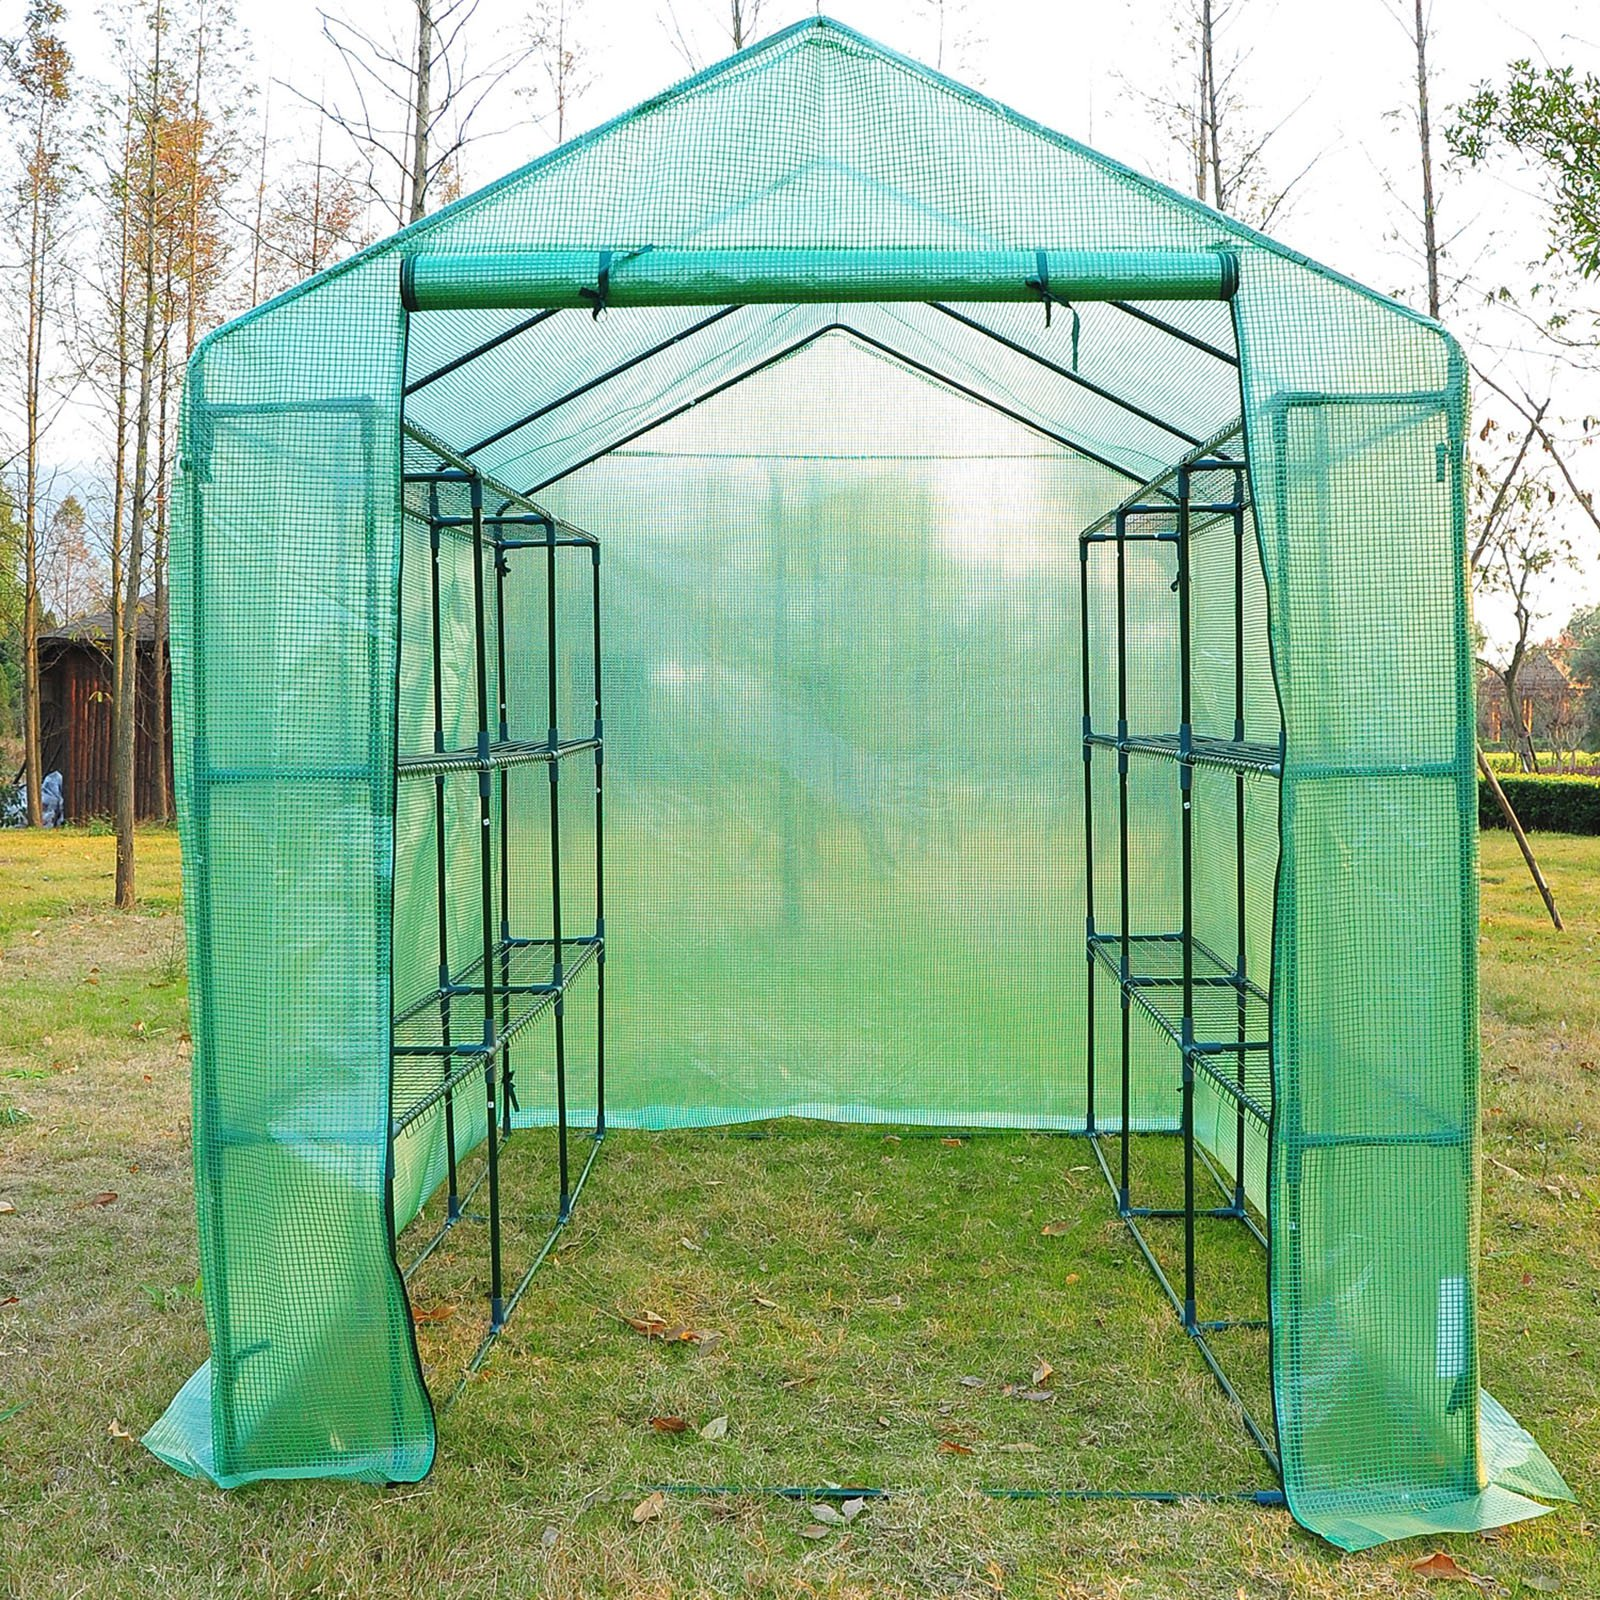 Outsunny 8L x 6W x 7H ft. Portable 6 Shelf Greenhouse